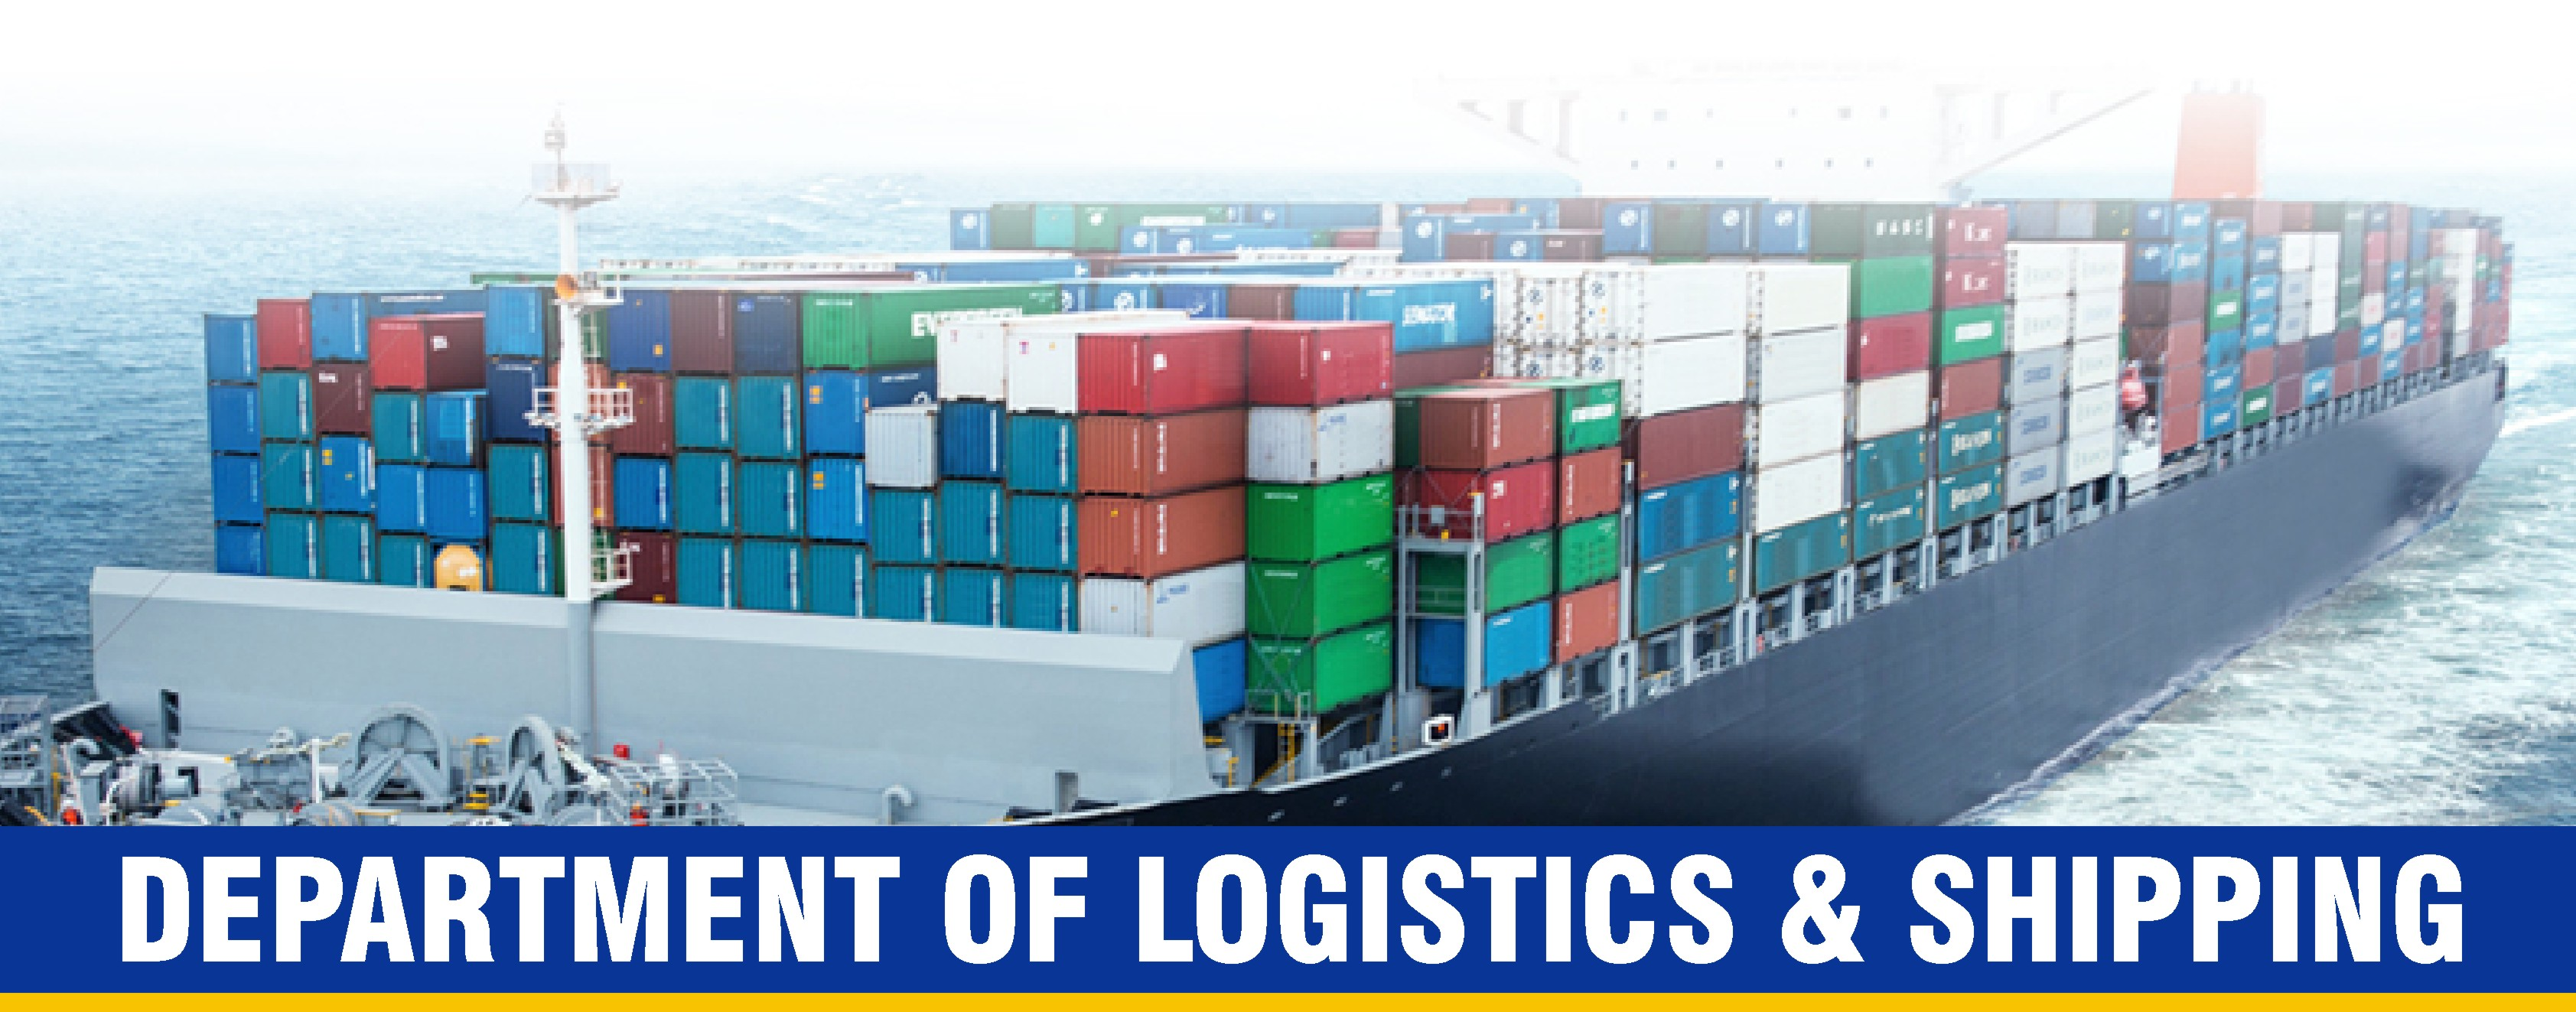 Aset | Dept Logistics And Shipping